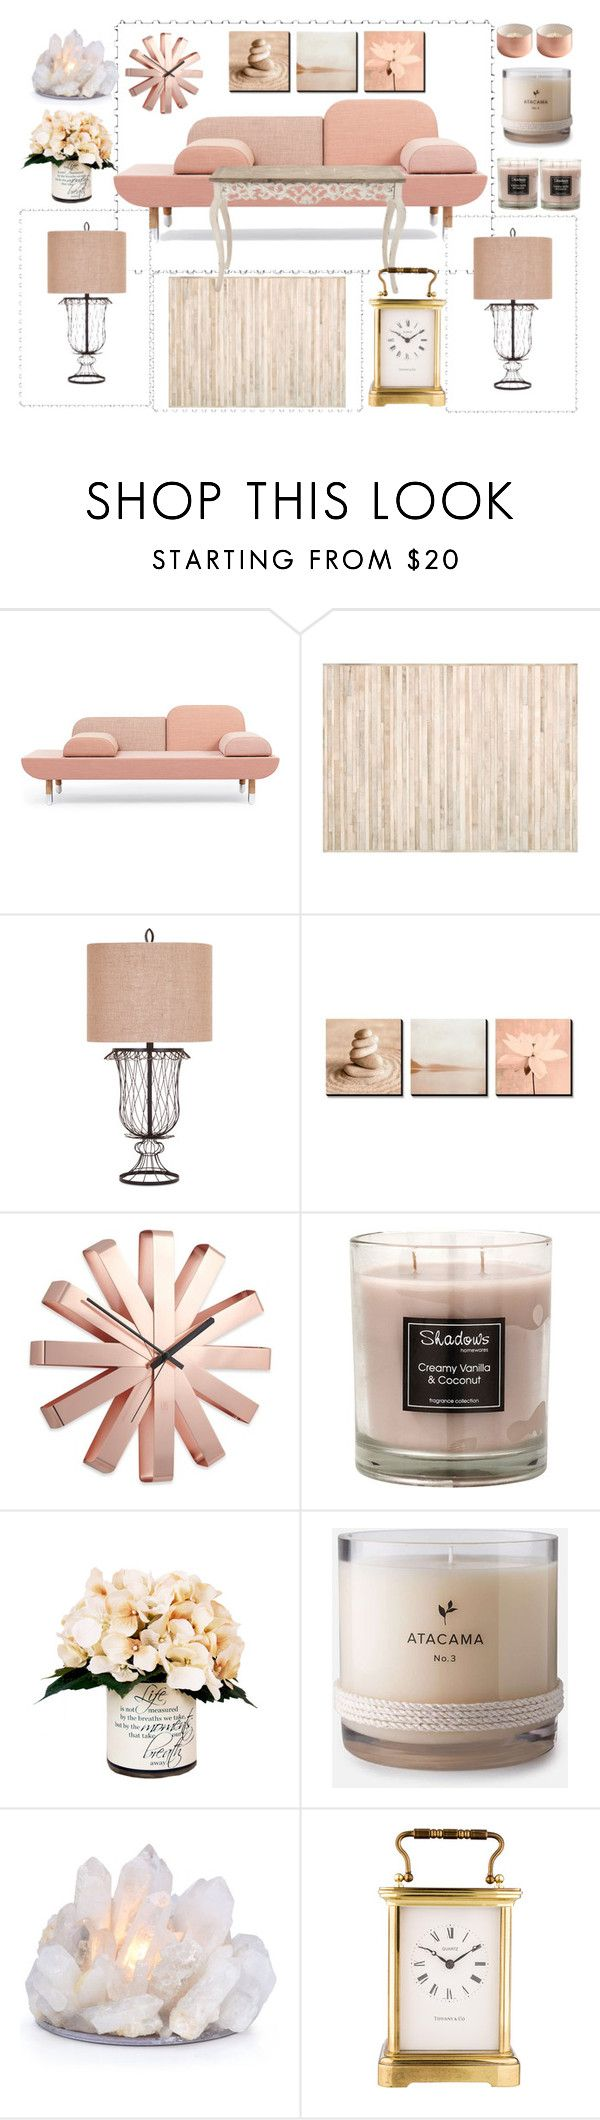 Home decor collage from january 2017 featuring currey company - By Alinadoroshenko Liked On Polyvore Featuring Interior Interiors Interior Design Home Home Decor Interior Decorating Calvin Klein Umbra